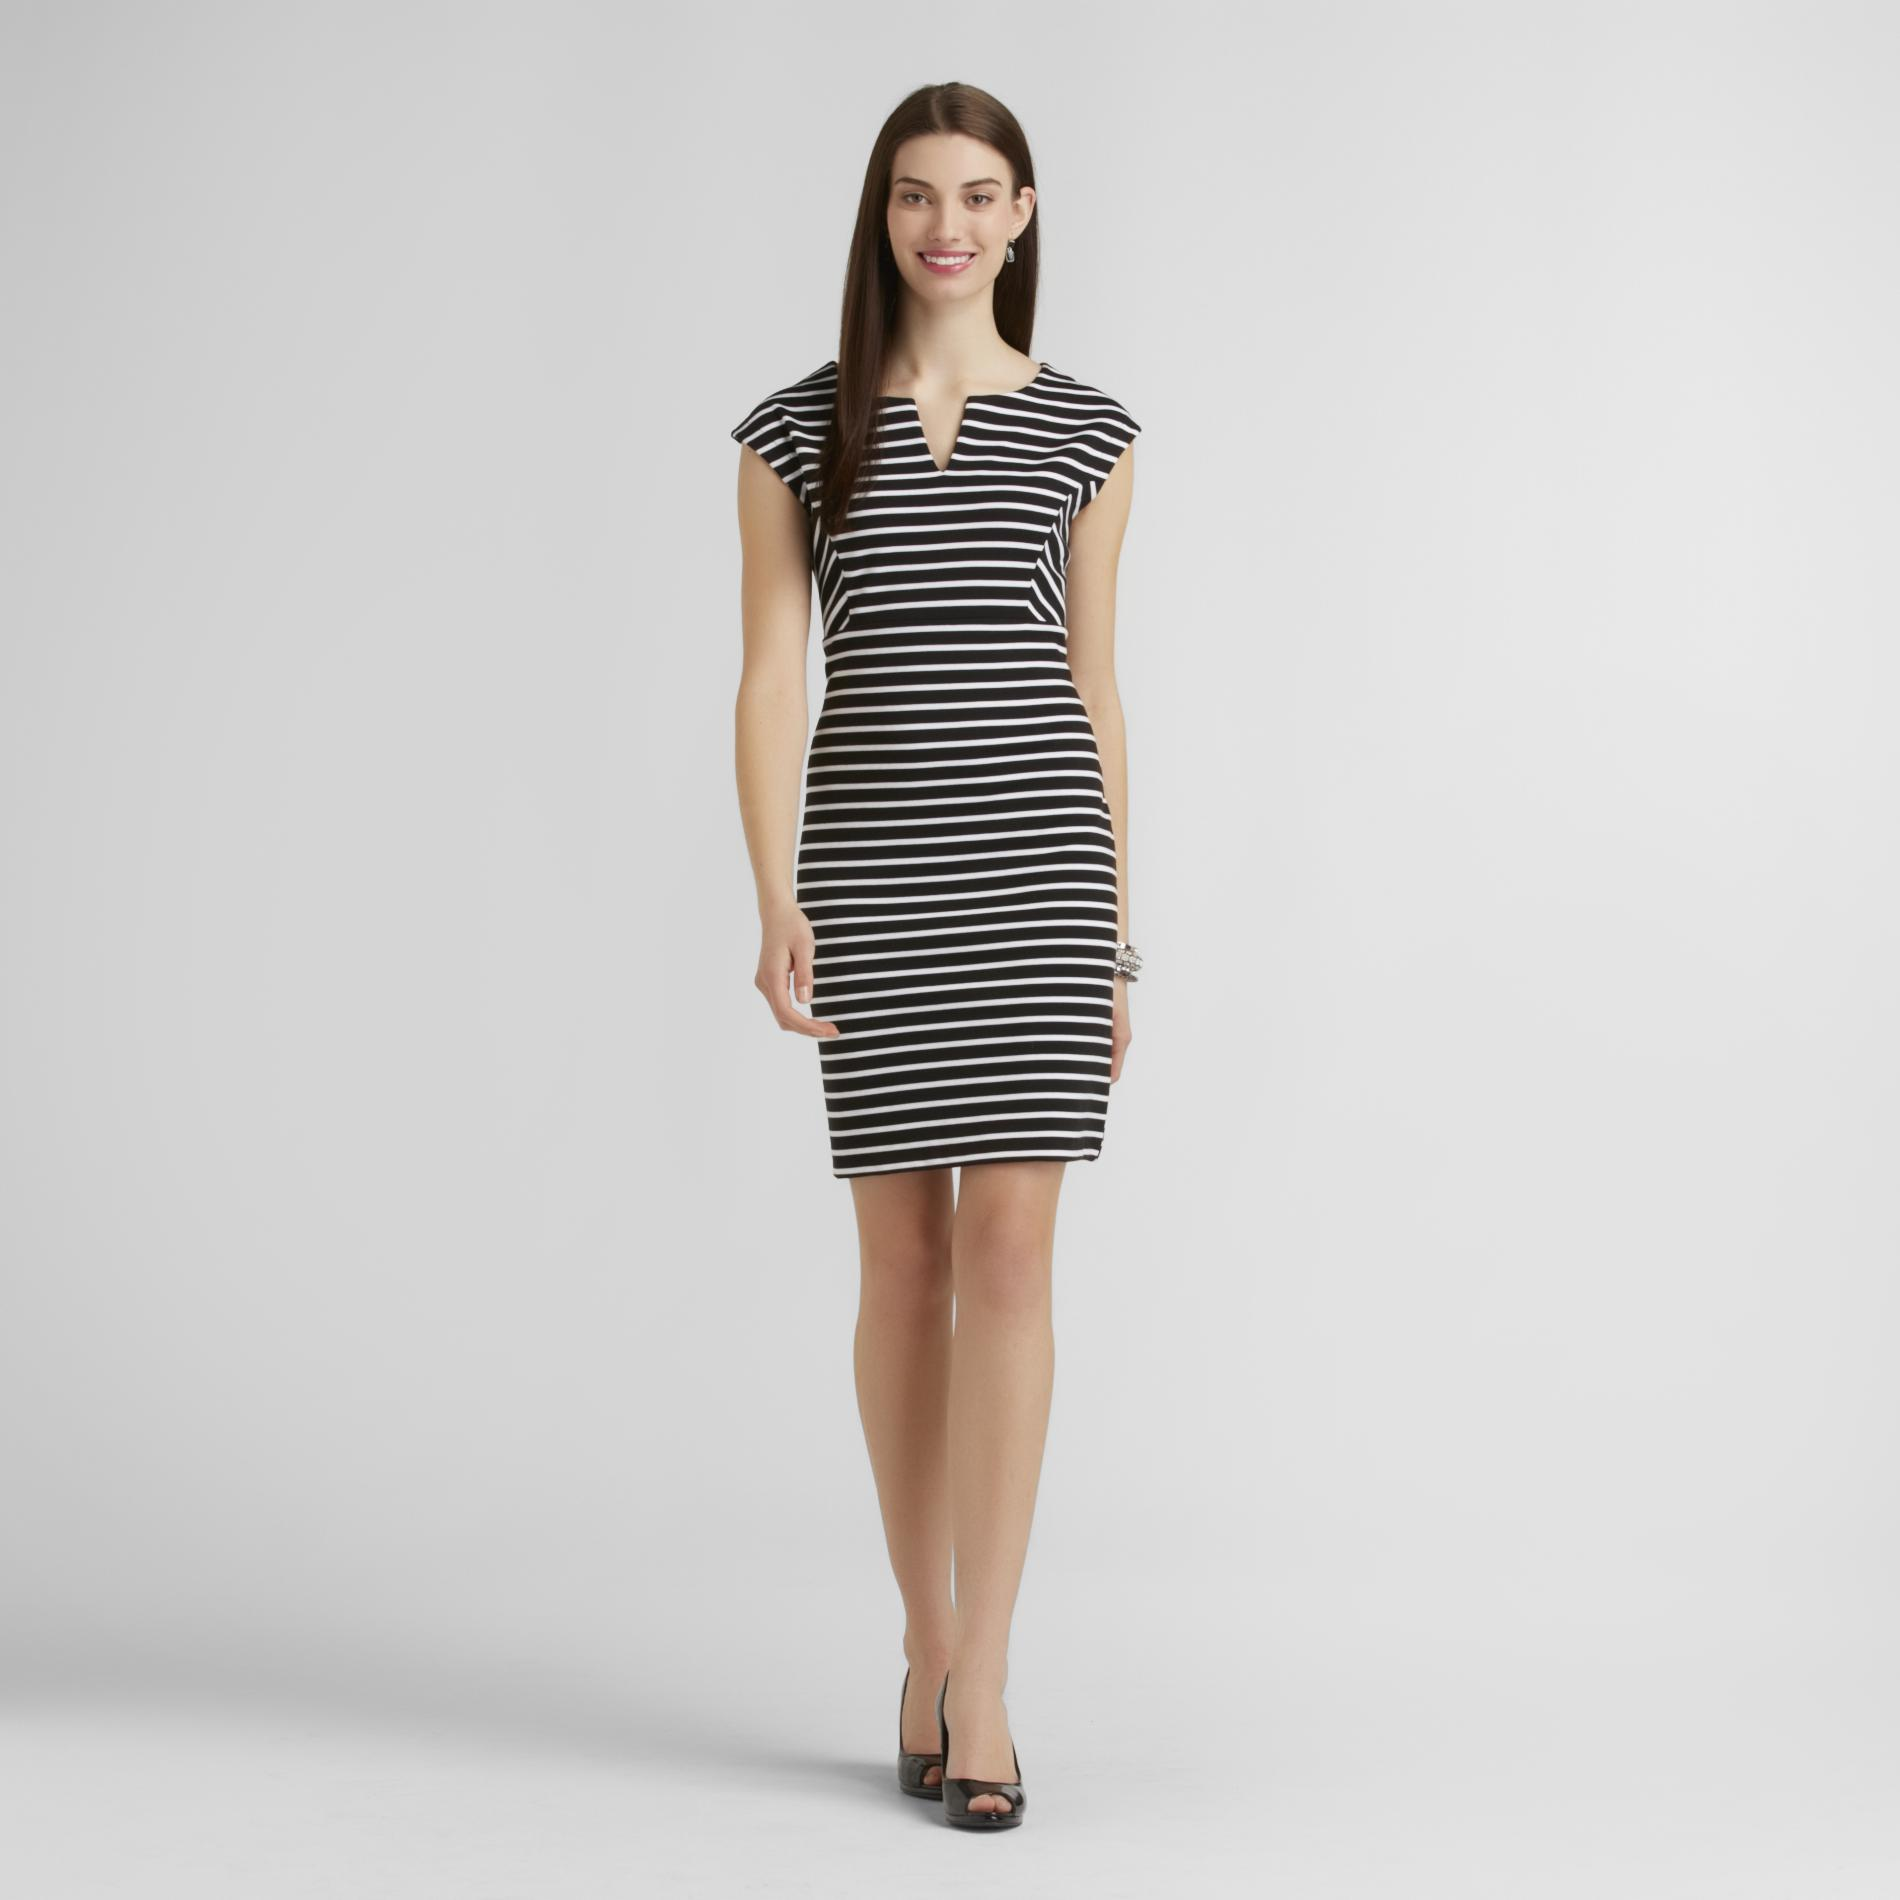 Attention Women's Sleeveless Ponte Dress - Striped at Kmart.com